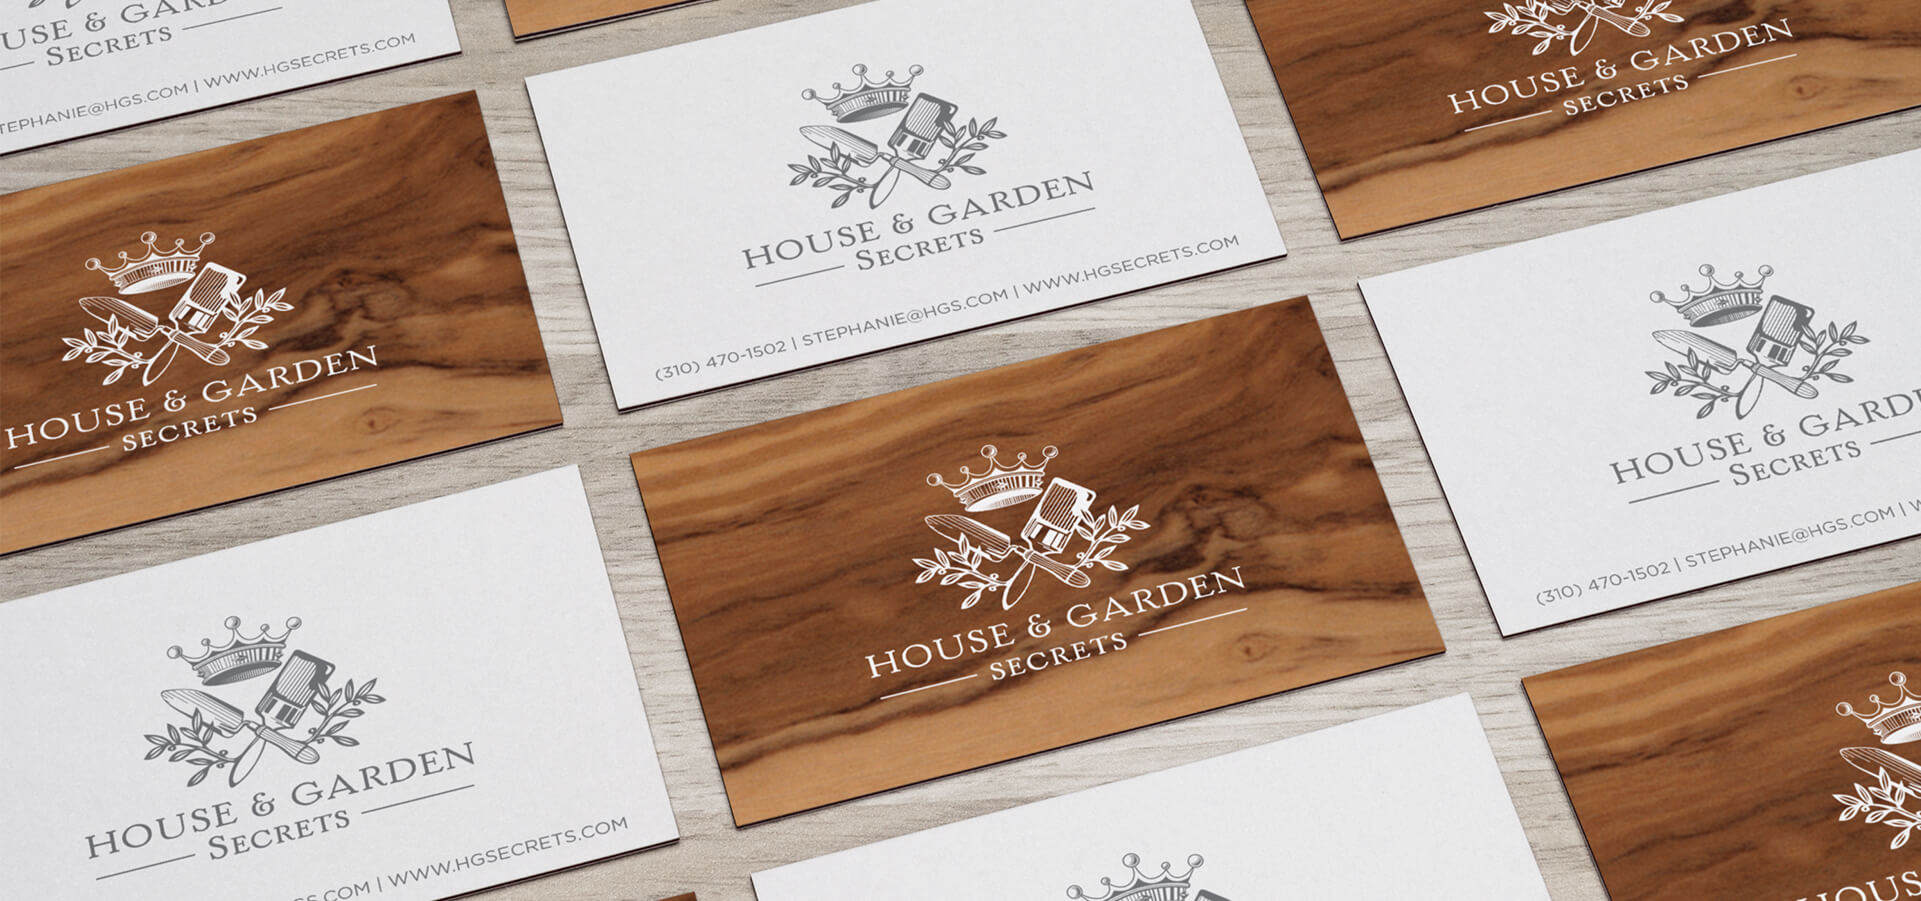 Wood veneer business cards with logo design